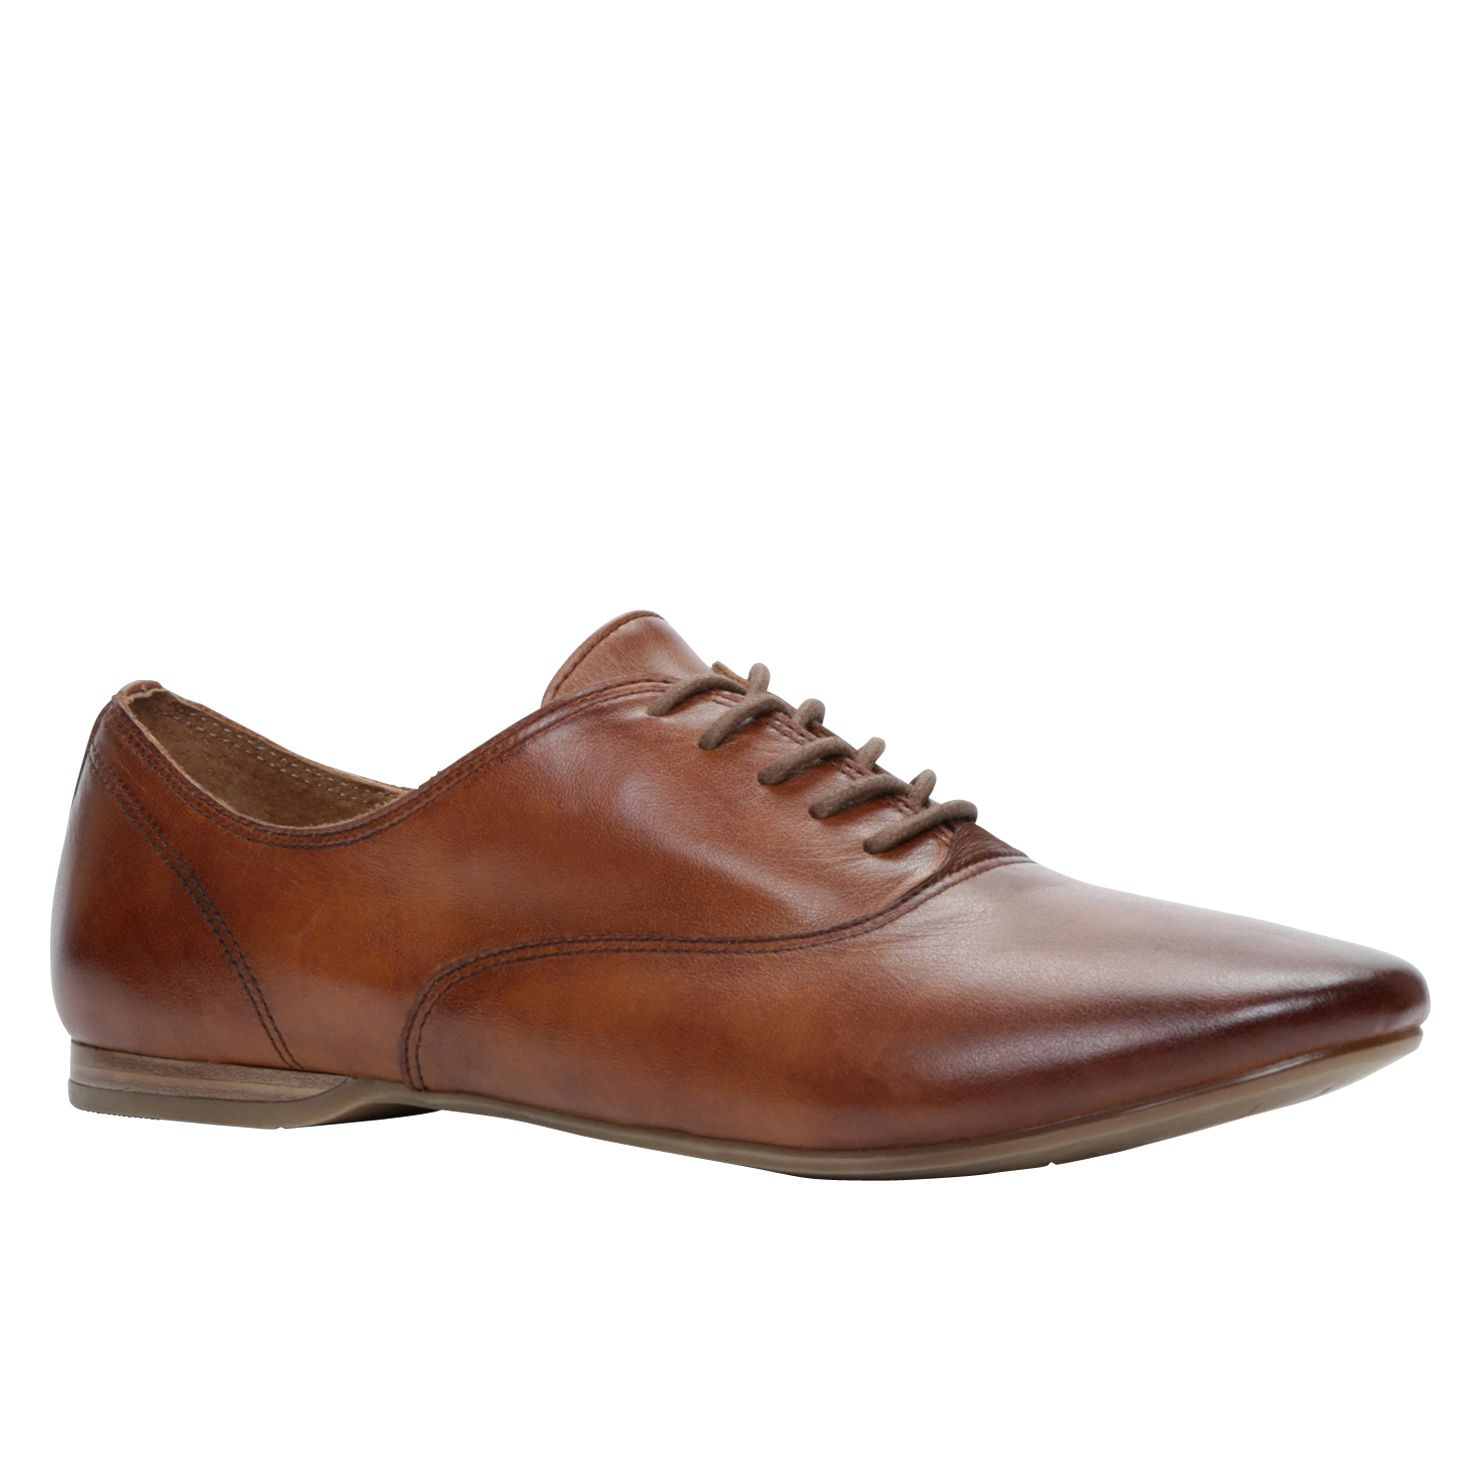 Corerien almand toe lace up shoes